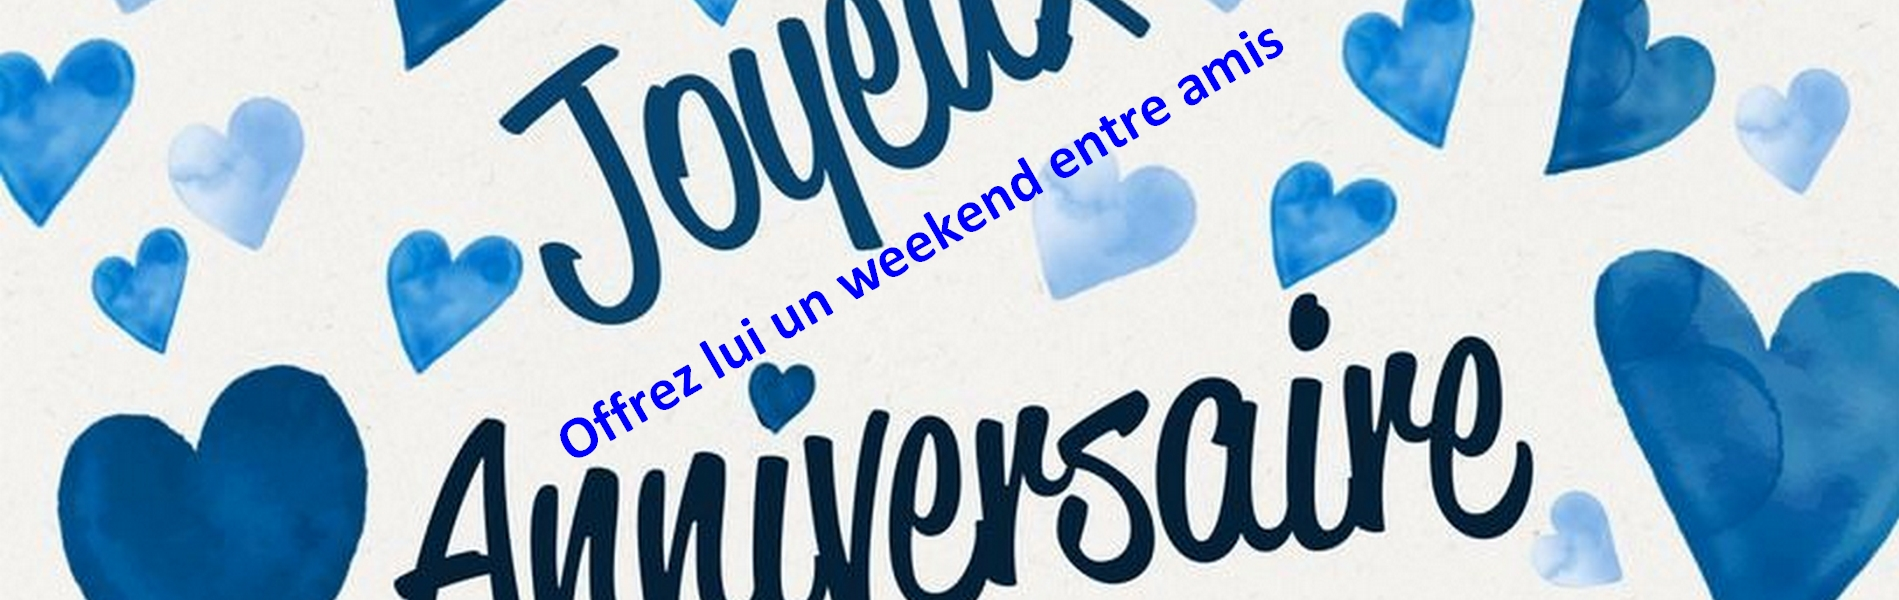 Weekend anniversaire